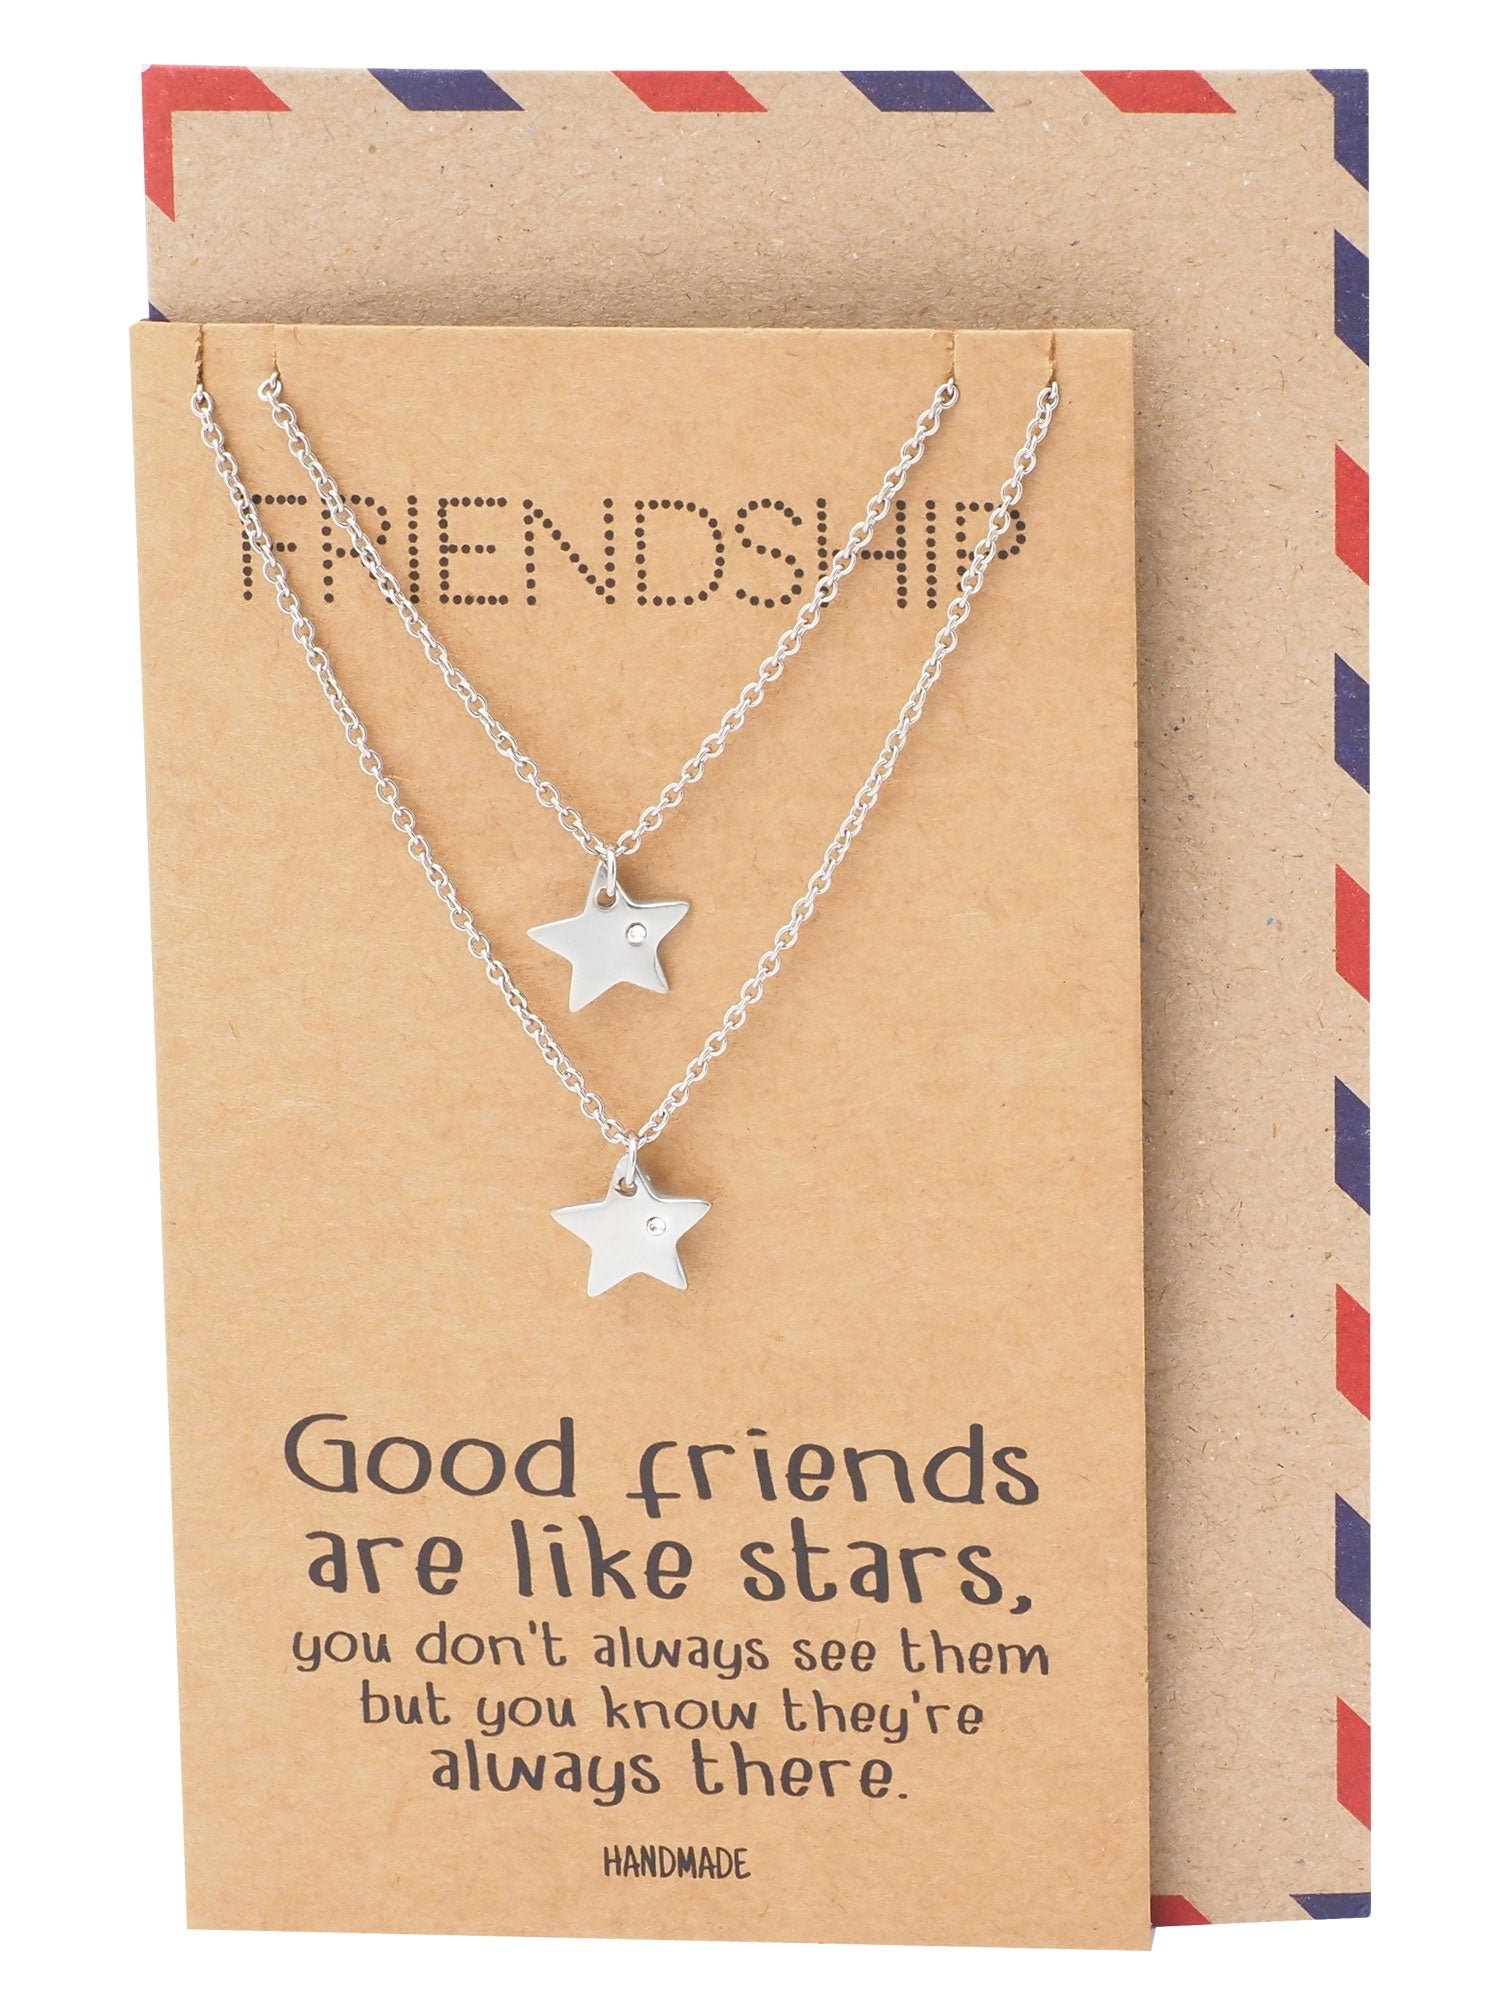 Macy Best Friend Necklaces with Matching Star Pendant, Friendship Necklace for 2